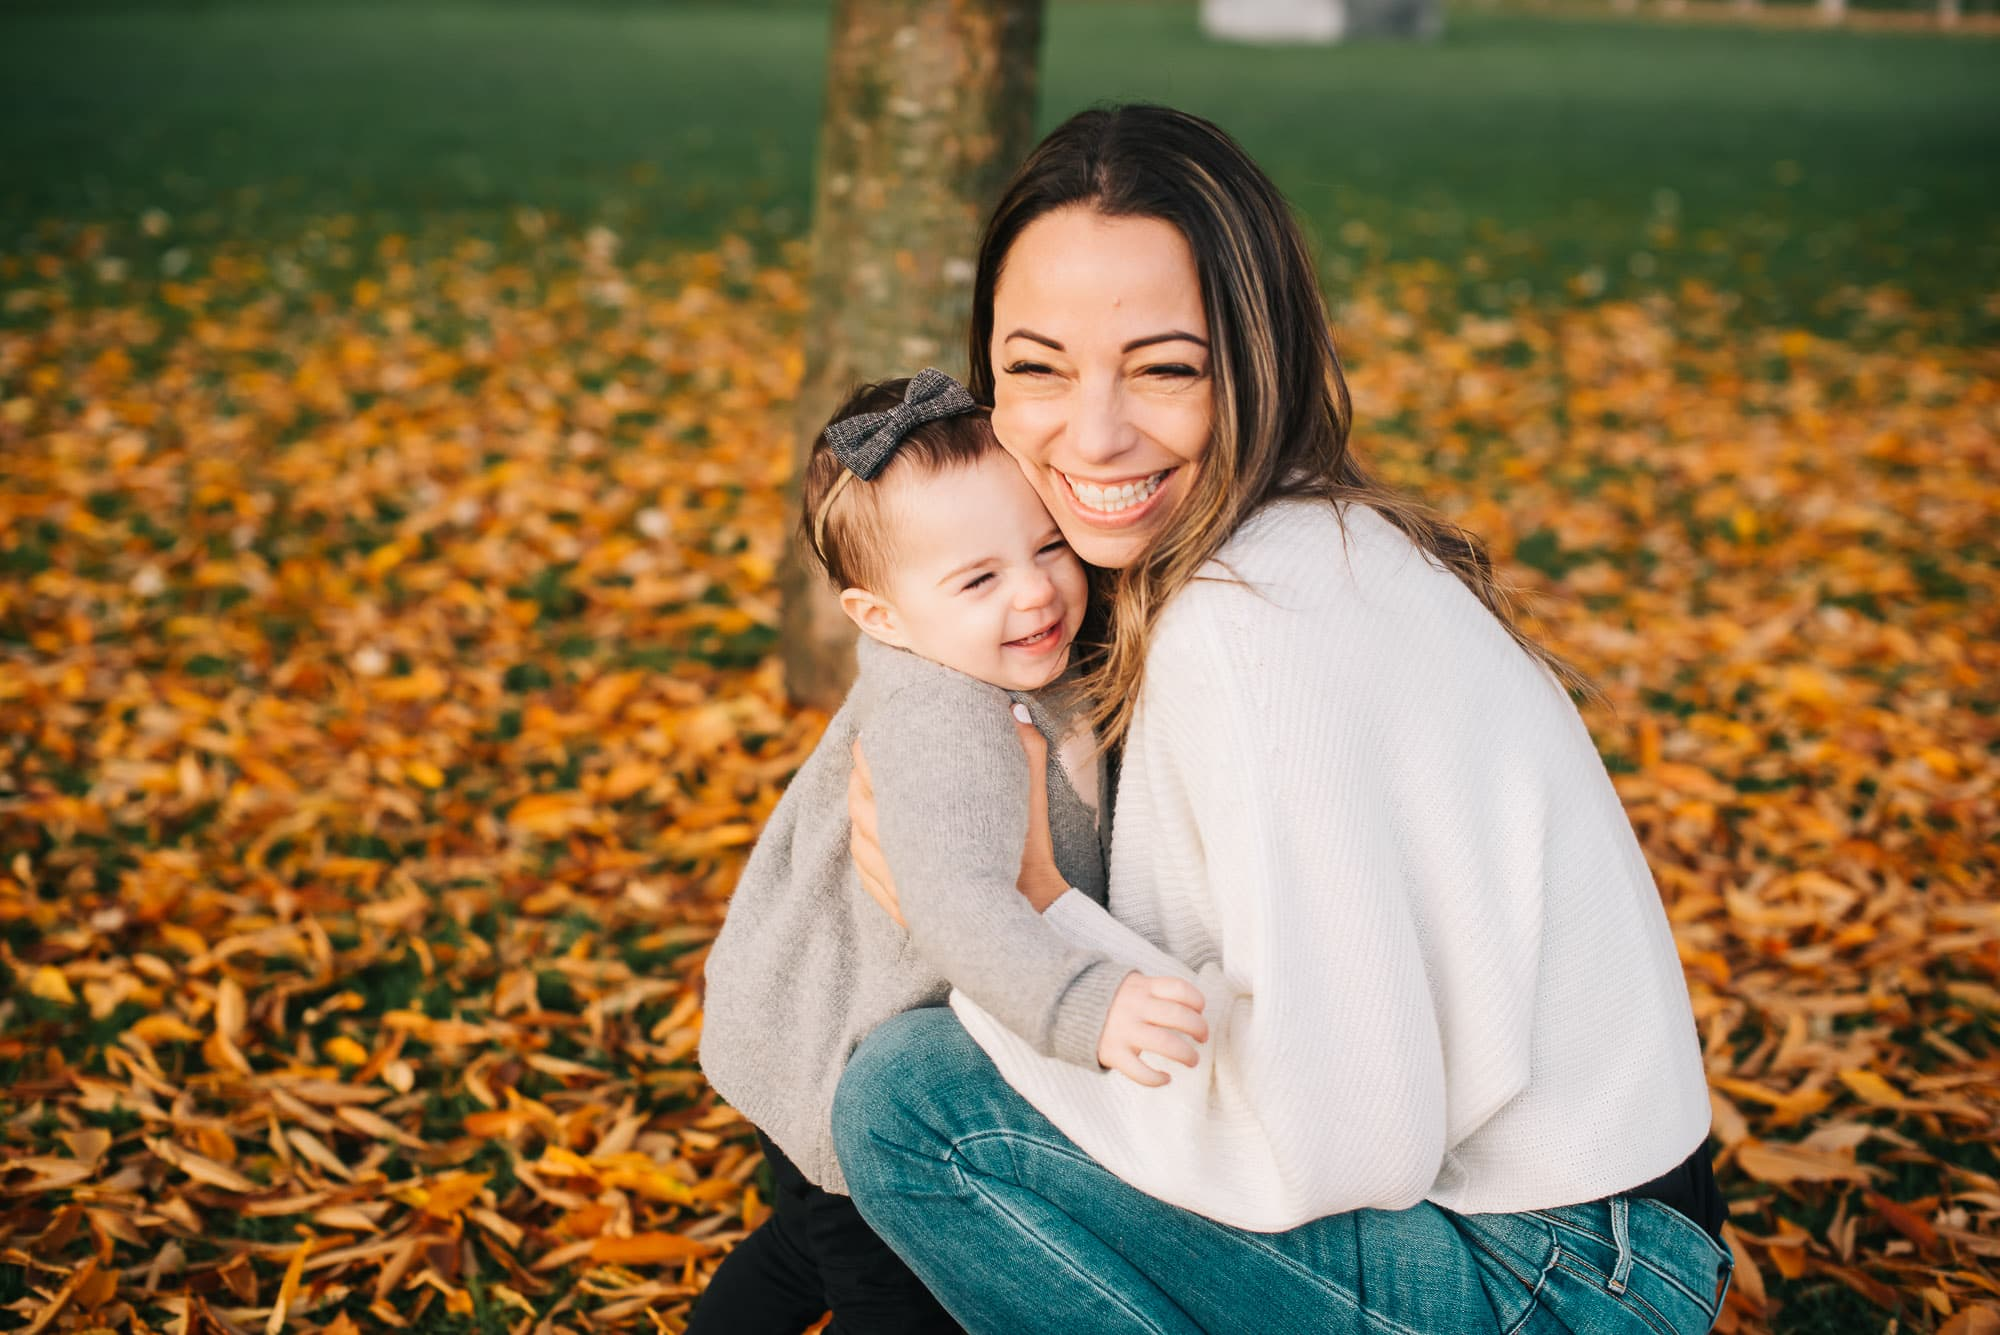 Vancouver Family Photographer captures mom and girl hugging in fall leaves